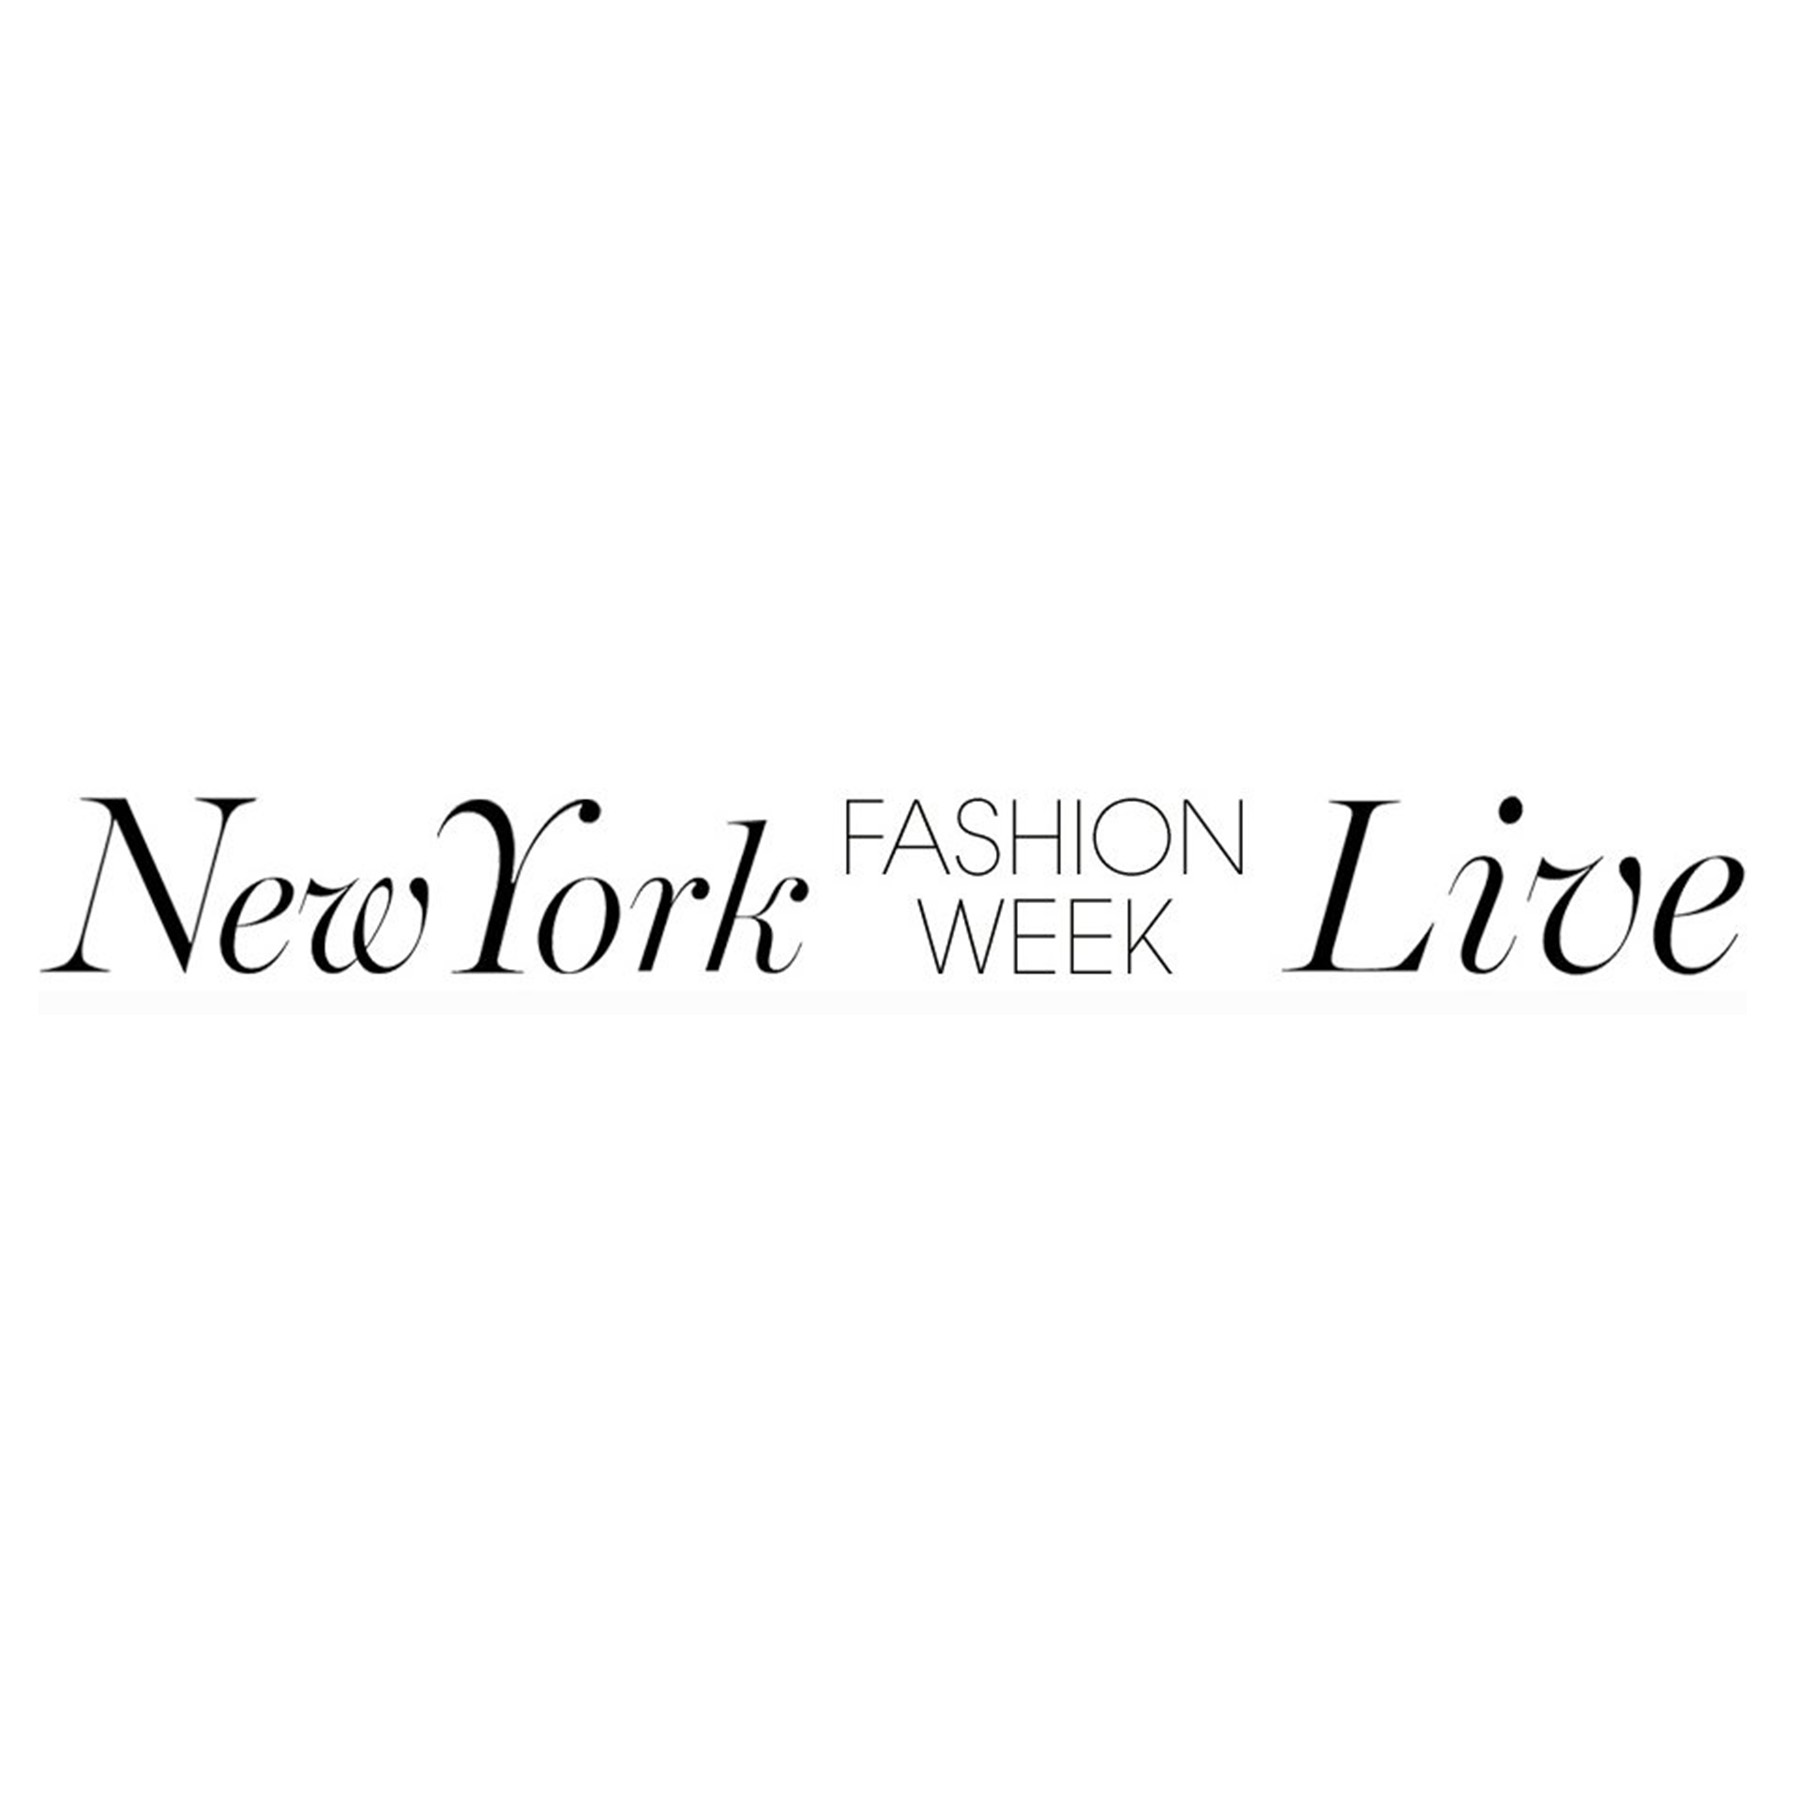 Emerging Designers Series: Interview With Clio Sage     New York Fashion Week Live   February 2017